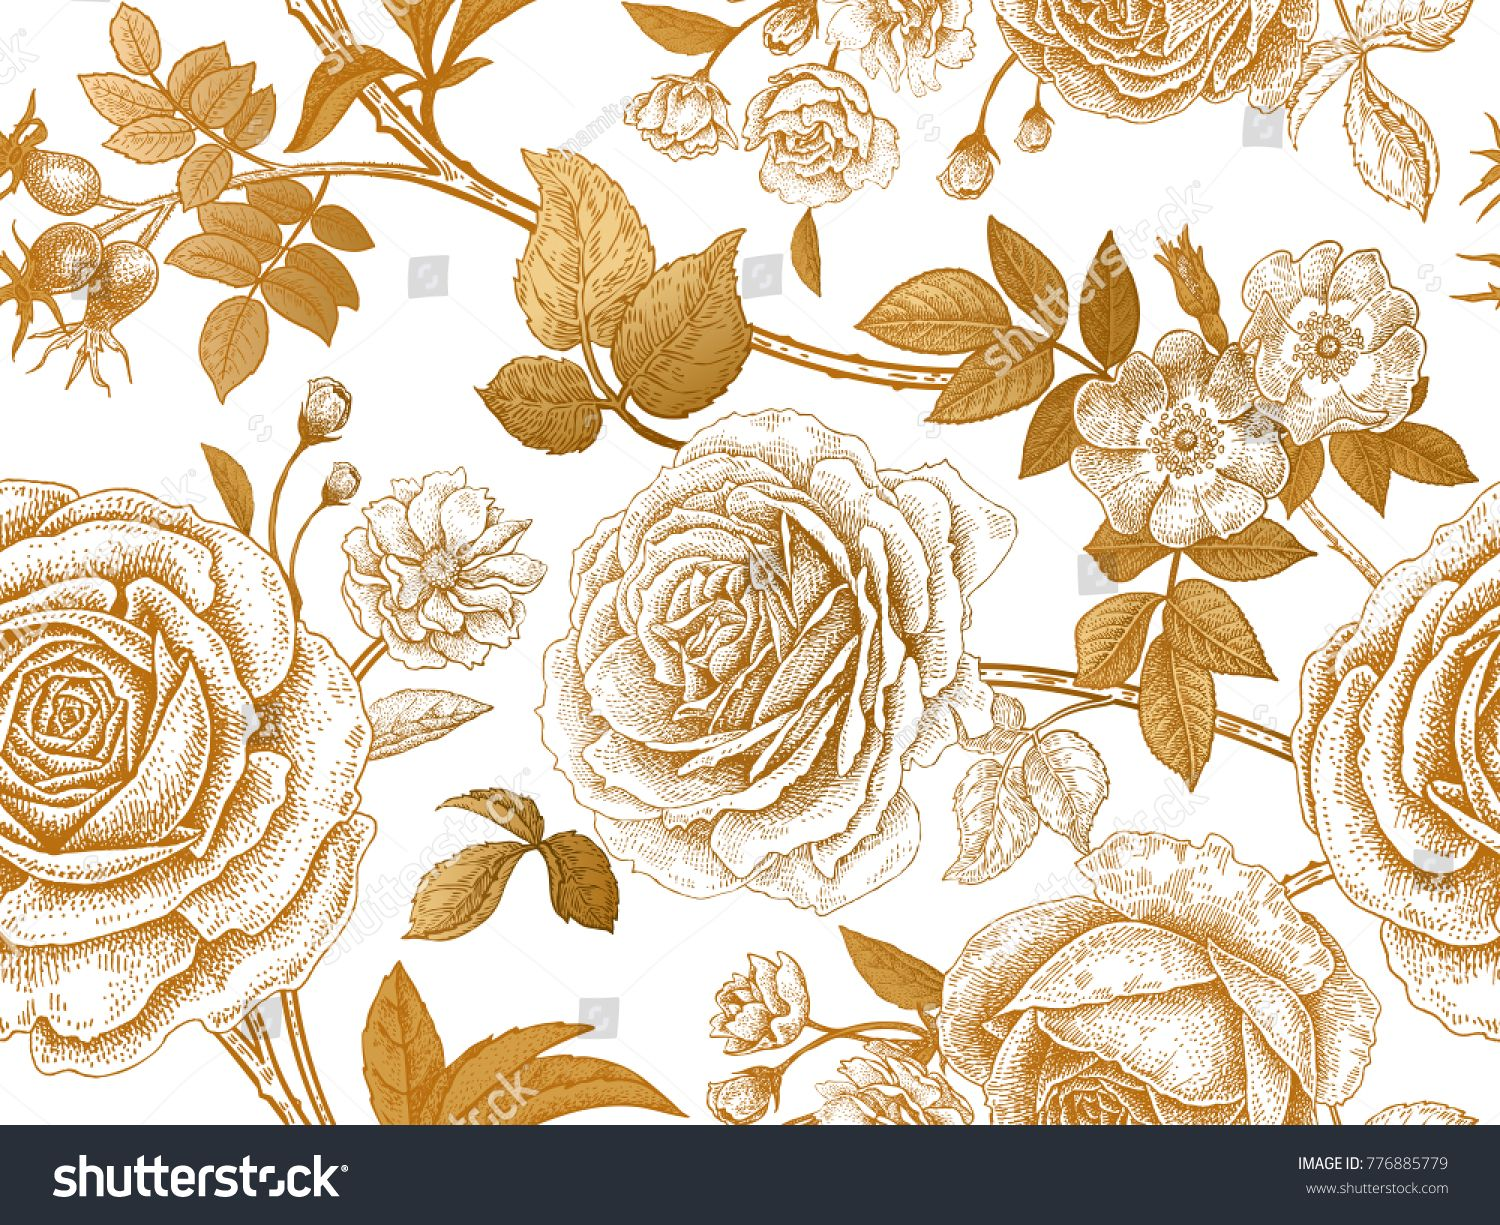 Garden Roses And Briar Gold Flowers Leaves Branches And Berries